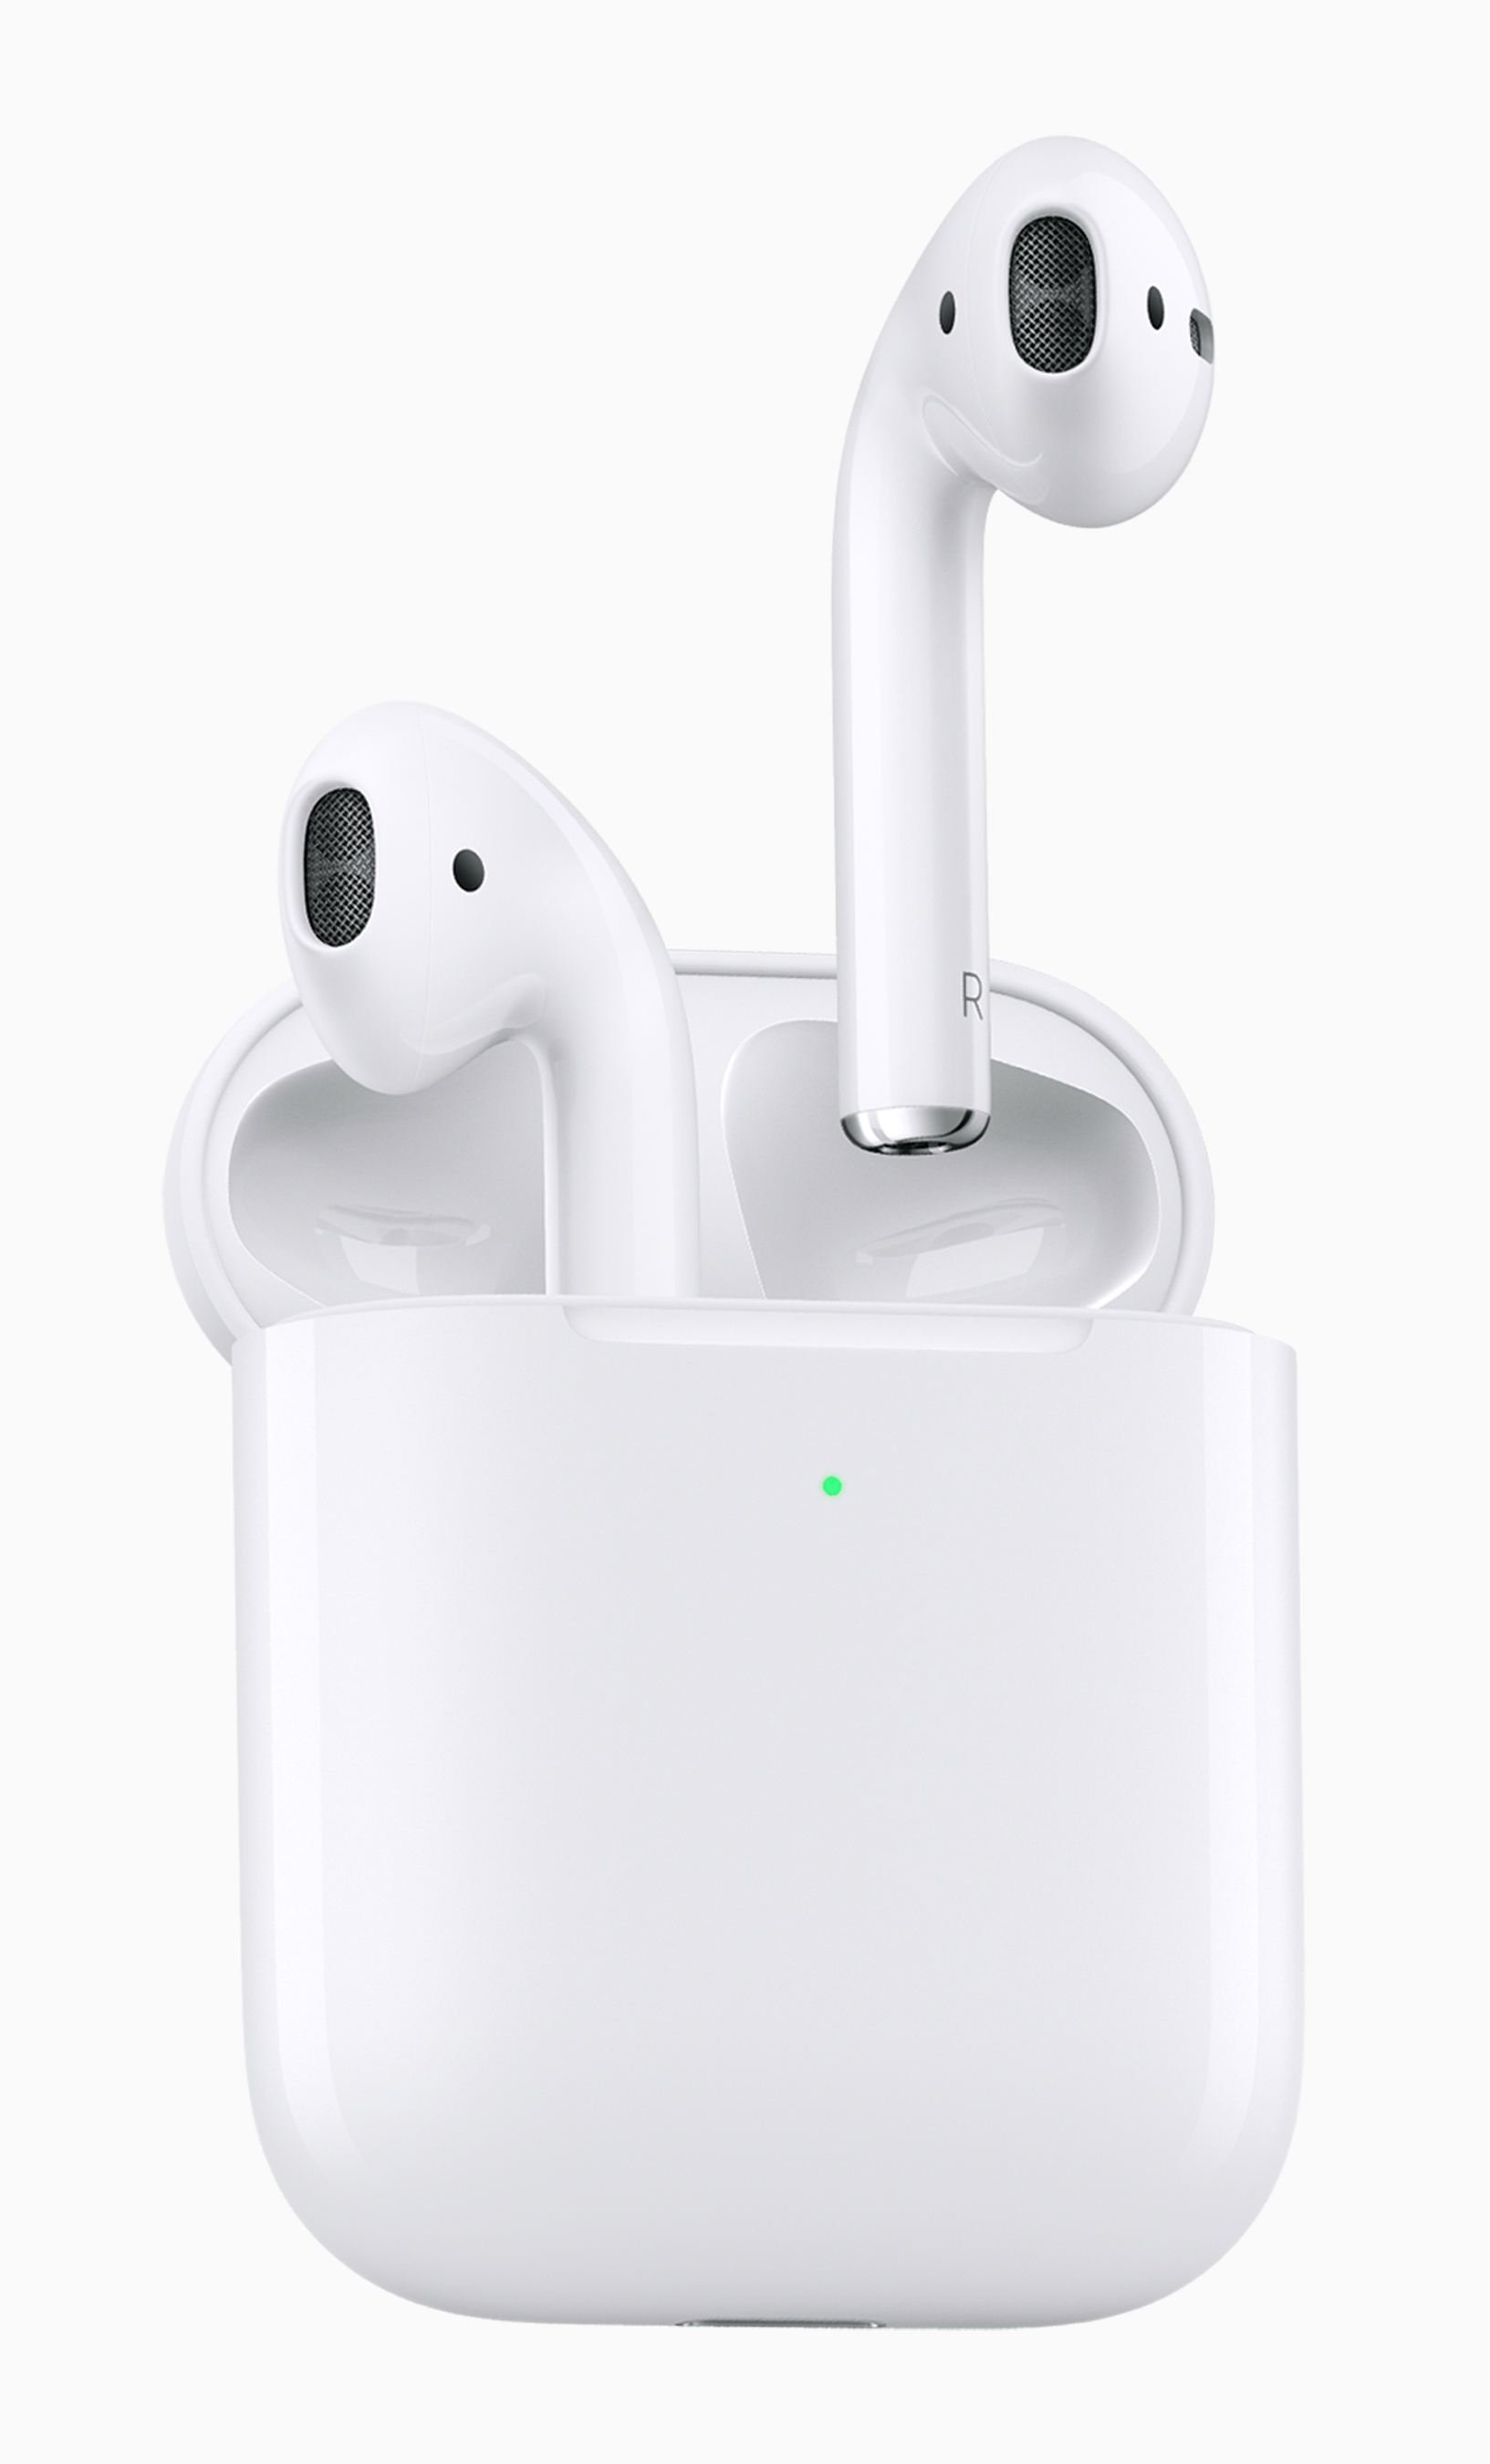 Apple-AirPods-worlds-most-popular-wireless-headphones_03202019.jpg